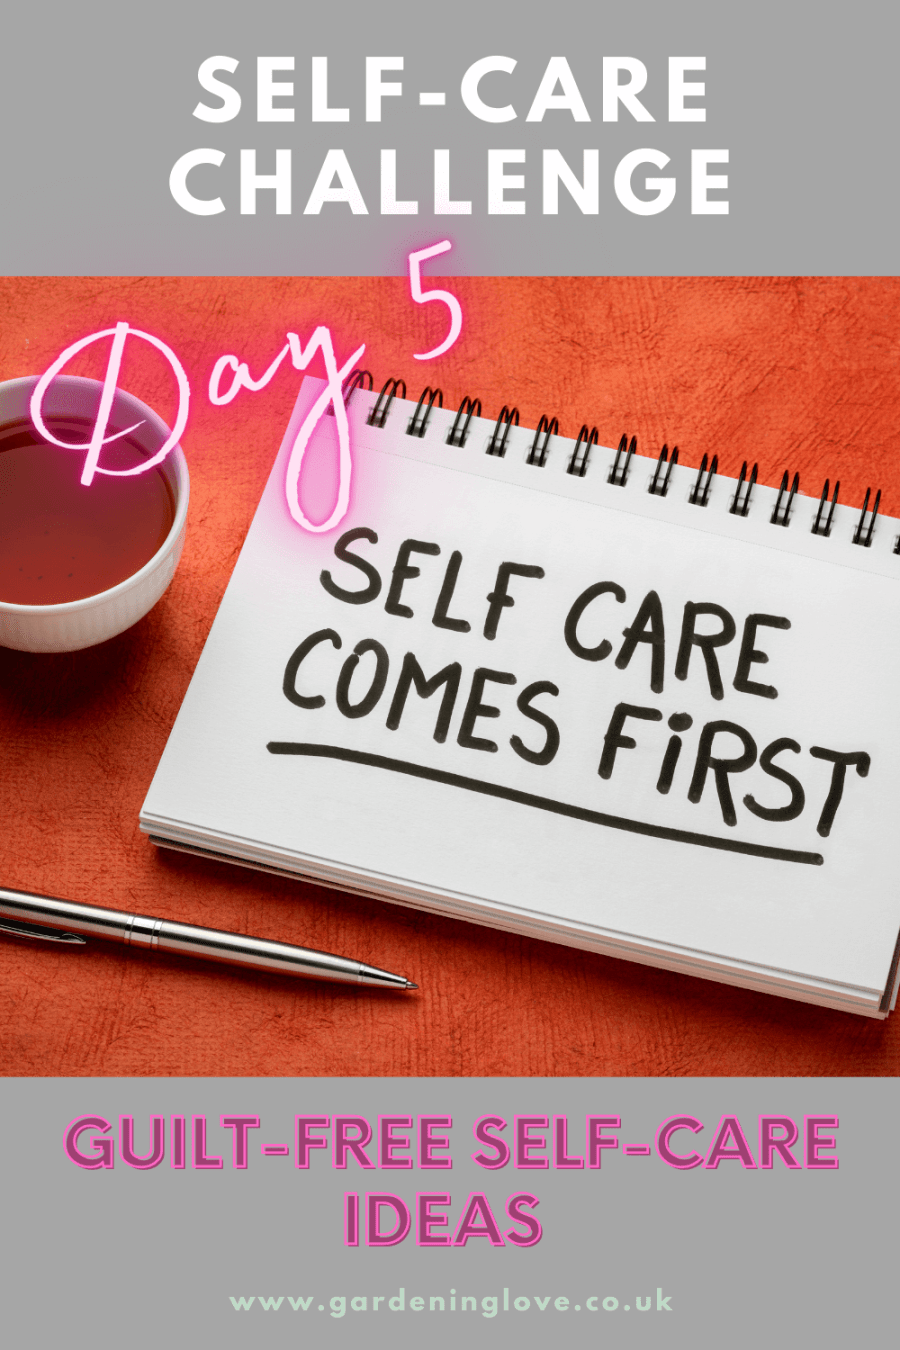 Day 5 of the self-care challenge. Simple guilt-free self-care ideas. #SelfCare #Wellness #Wellbeing